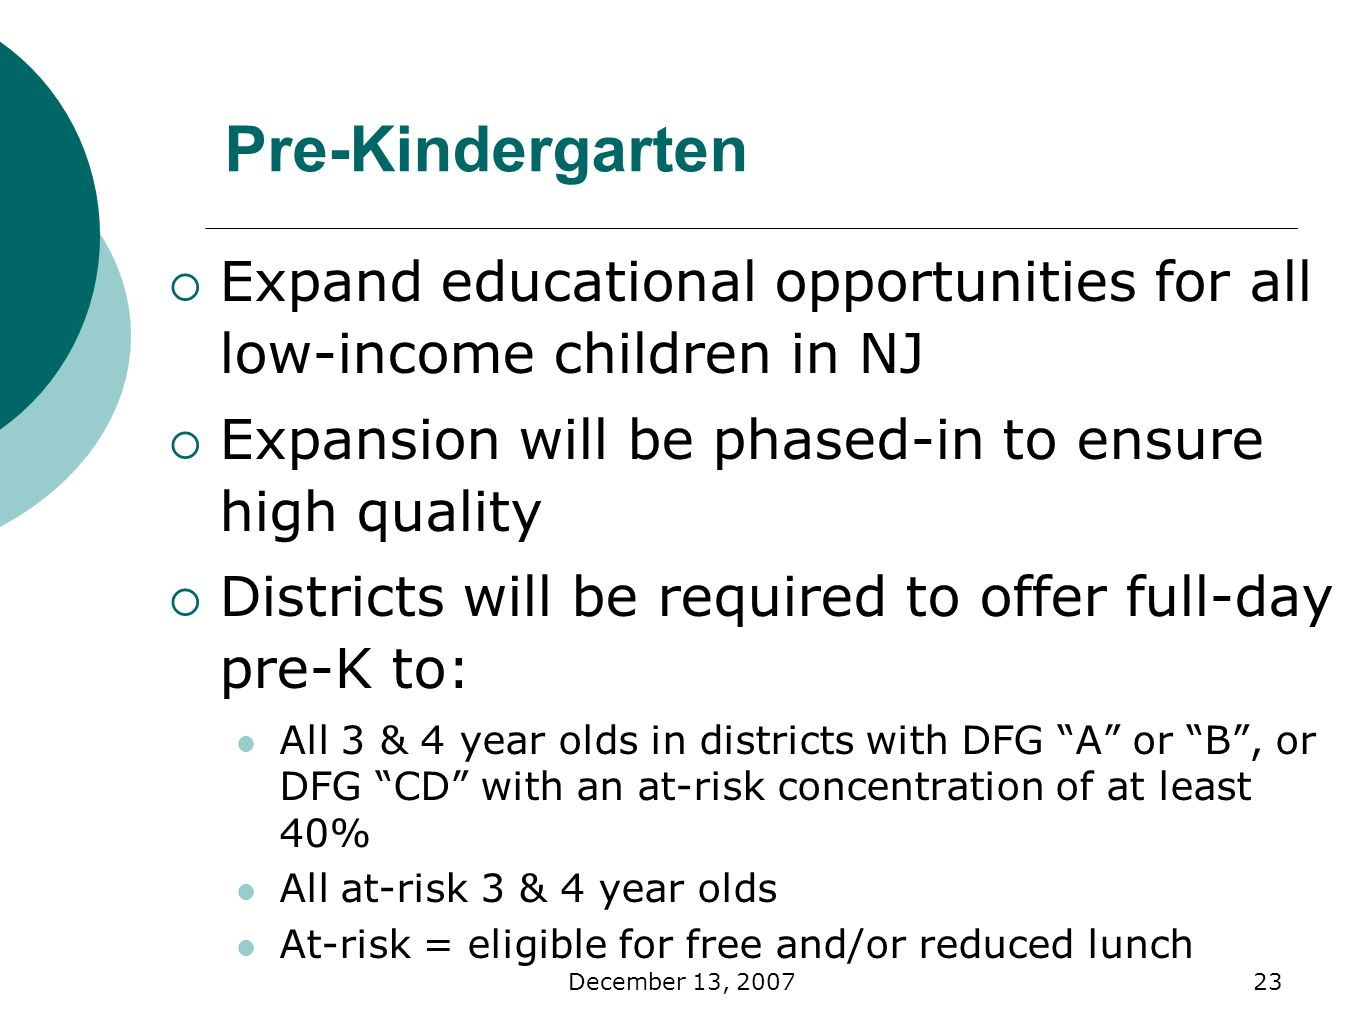 December 13, Pre-Kindergarten Expand educational opportunities for all low-income children in NJ Expansion will be phased-in to ensure high quality Districts will be required to offer full-day pre-K to: All 3 & 4 year olds in districts with DFG A or B, or DFG CD with an at-risk concentration of at least 40% All at-risk 3 & 4 year olds At-risk = eligible for free and/or reduced lunch